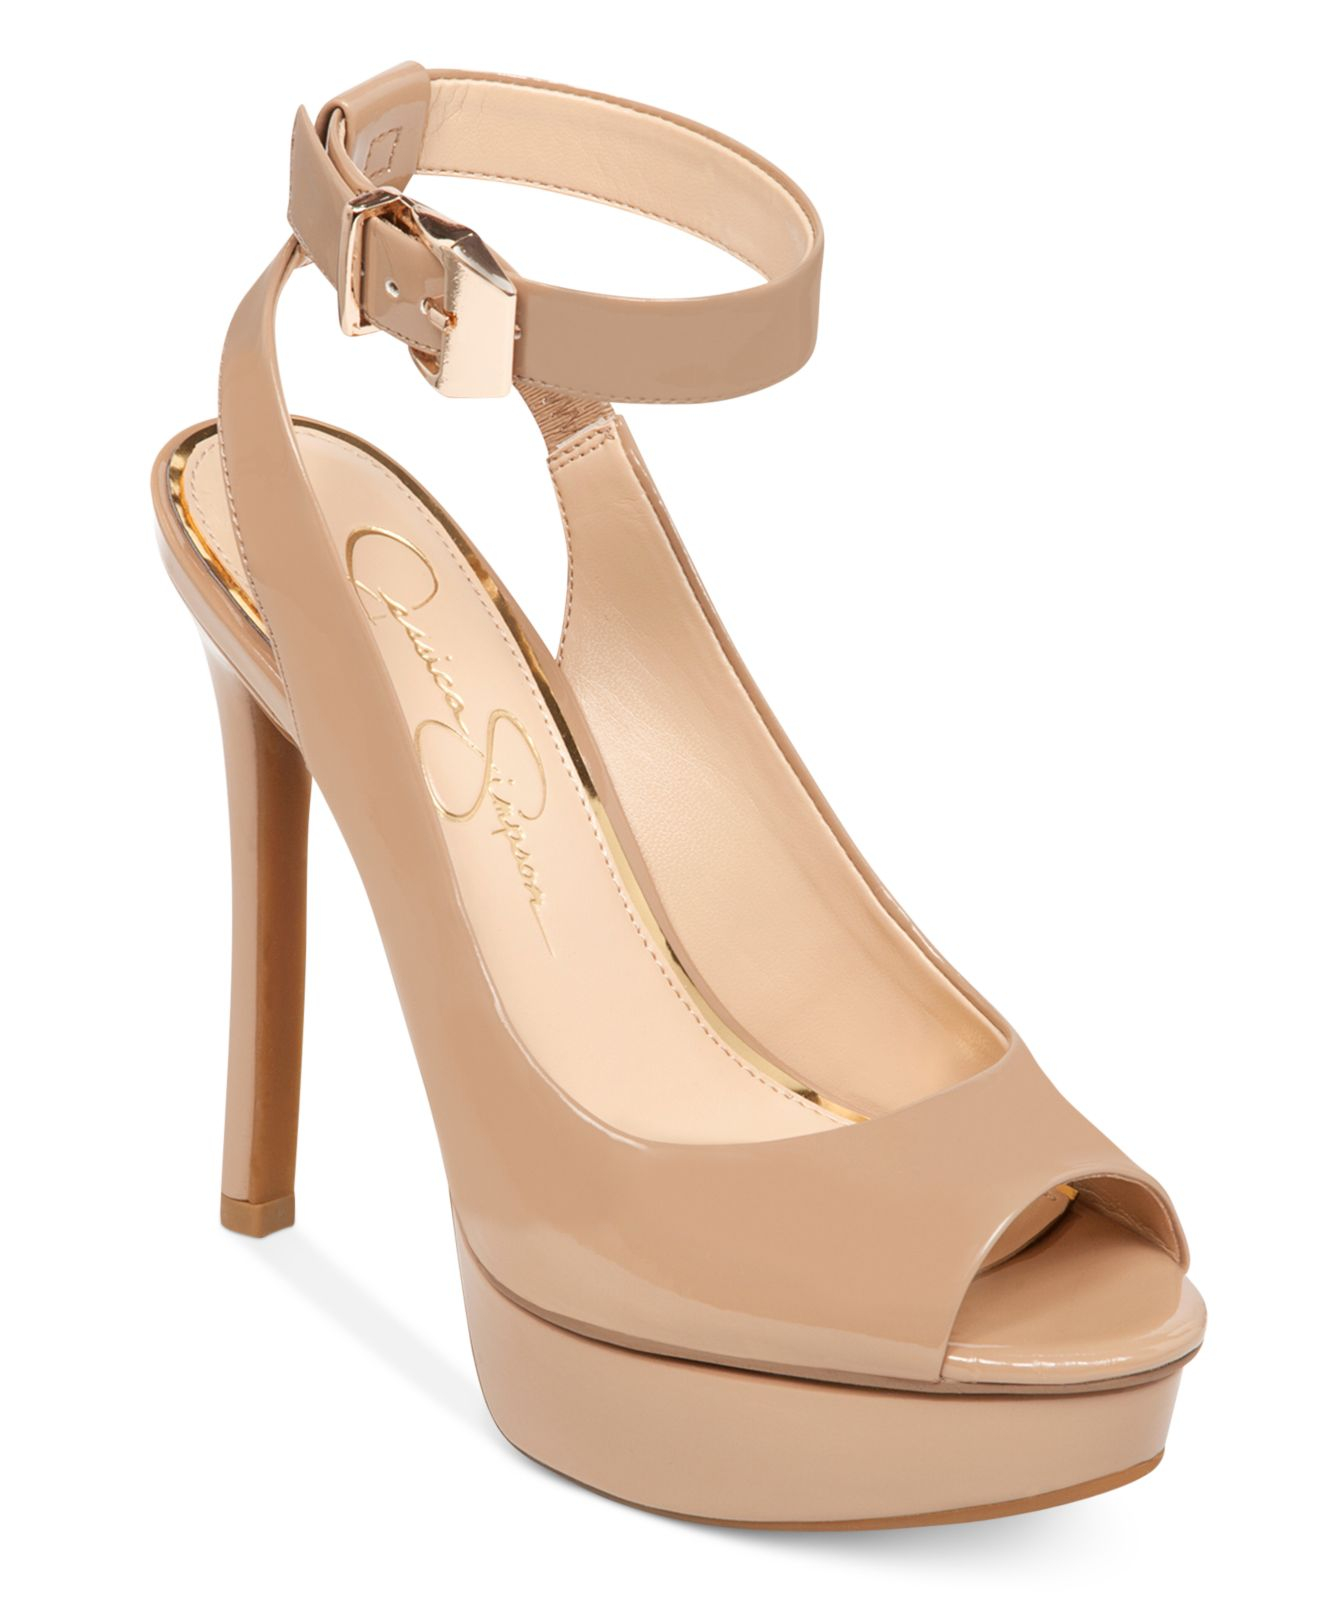 1b14cf80ec7950 Jessica Simpson Ankle Strap Heels. Lyst - Jessica simpson Careen Ankle  Strap Platform Pumps in Natural